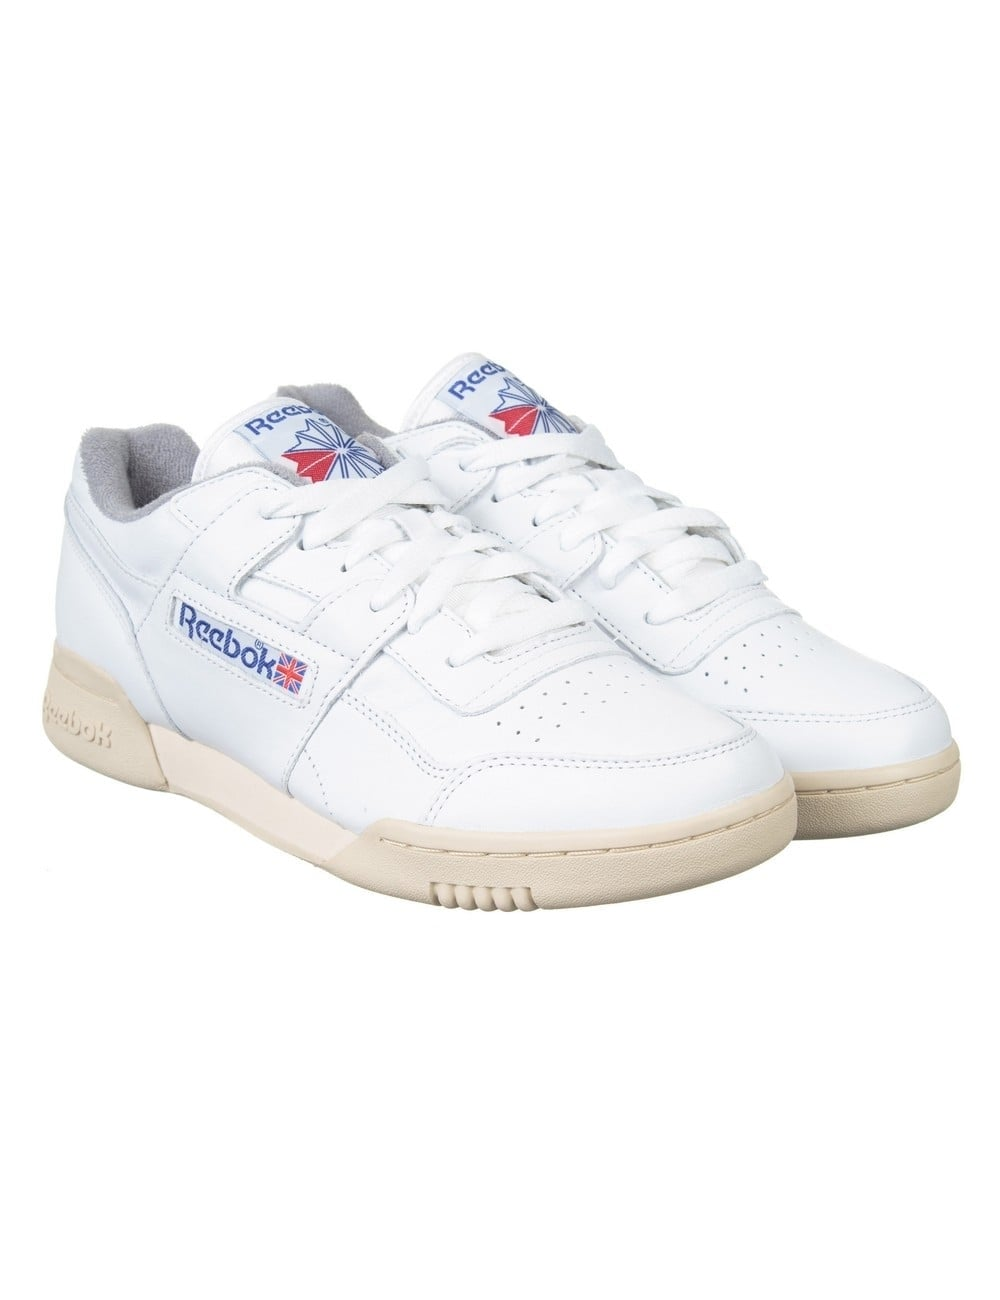 ef99463daa5894 Reebok Workout Plus Shoes - White Royal Grey Sand - Footwear from ...